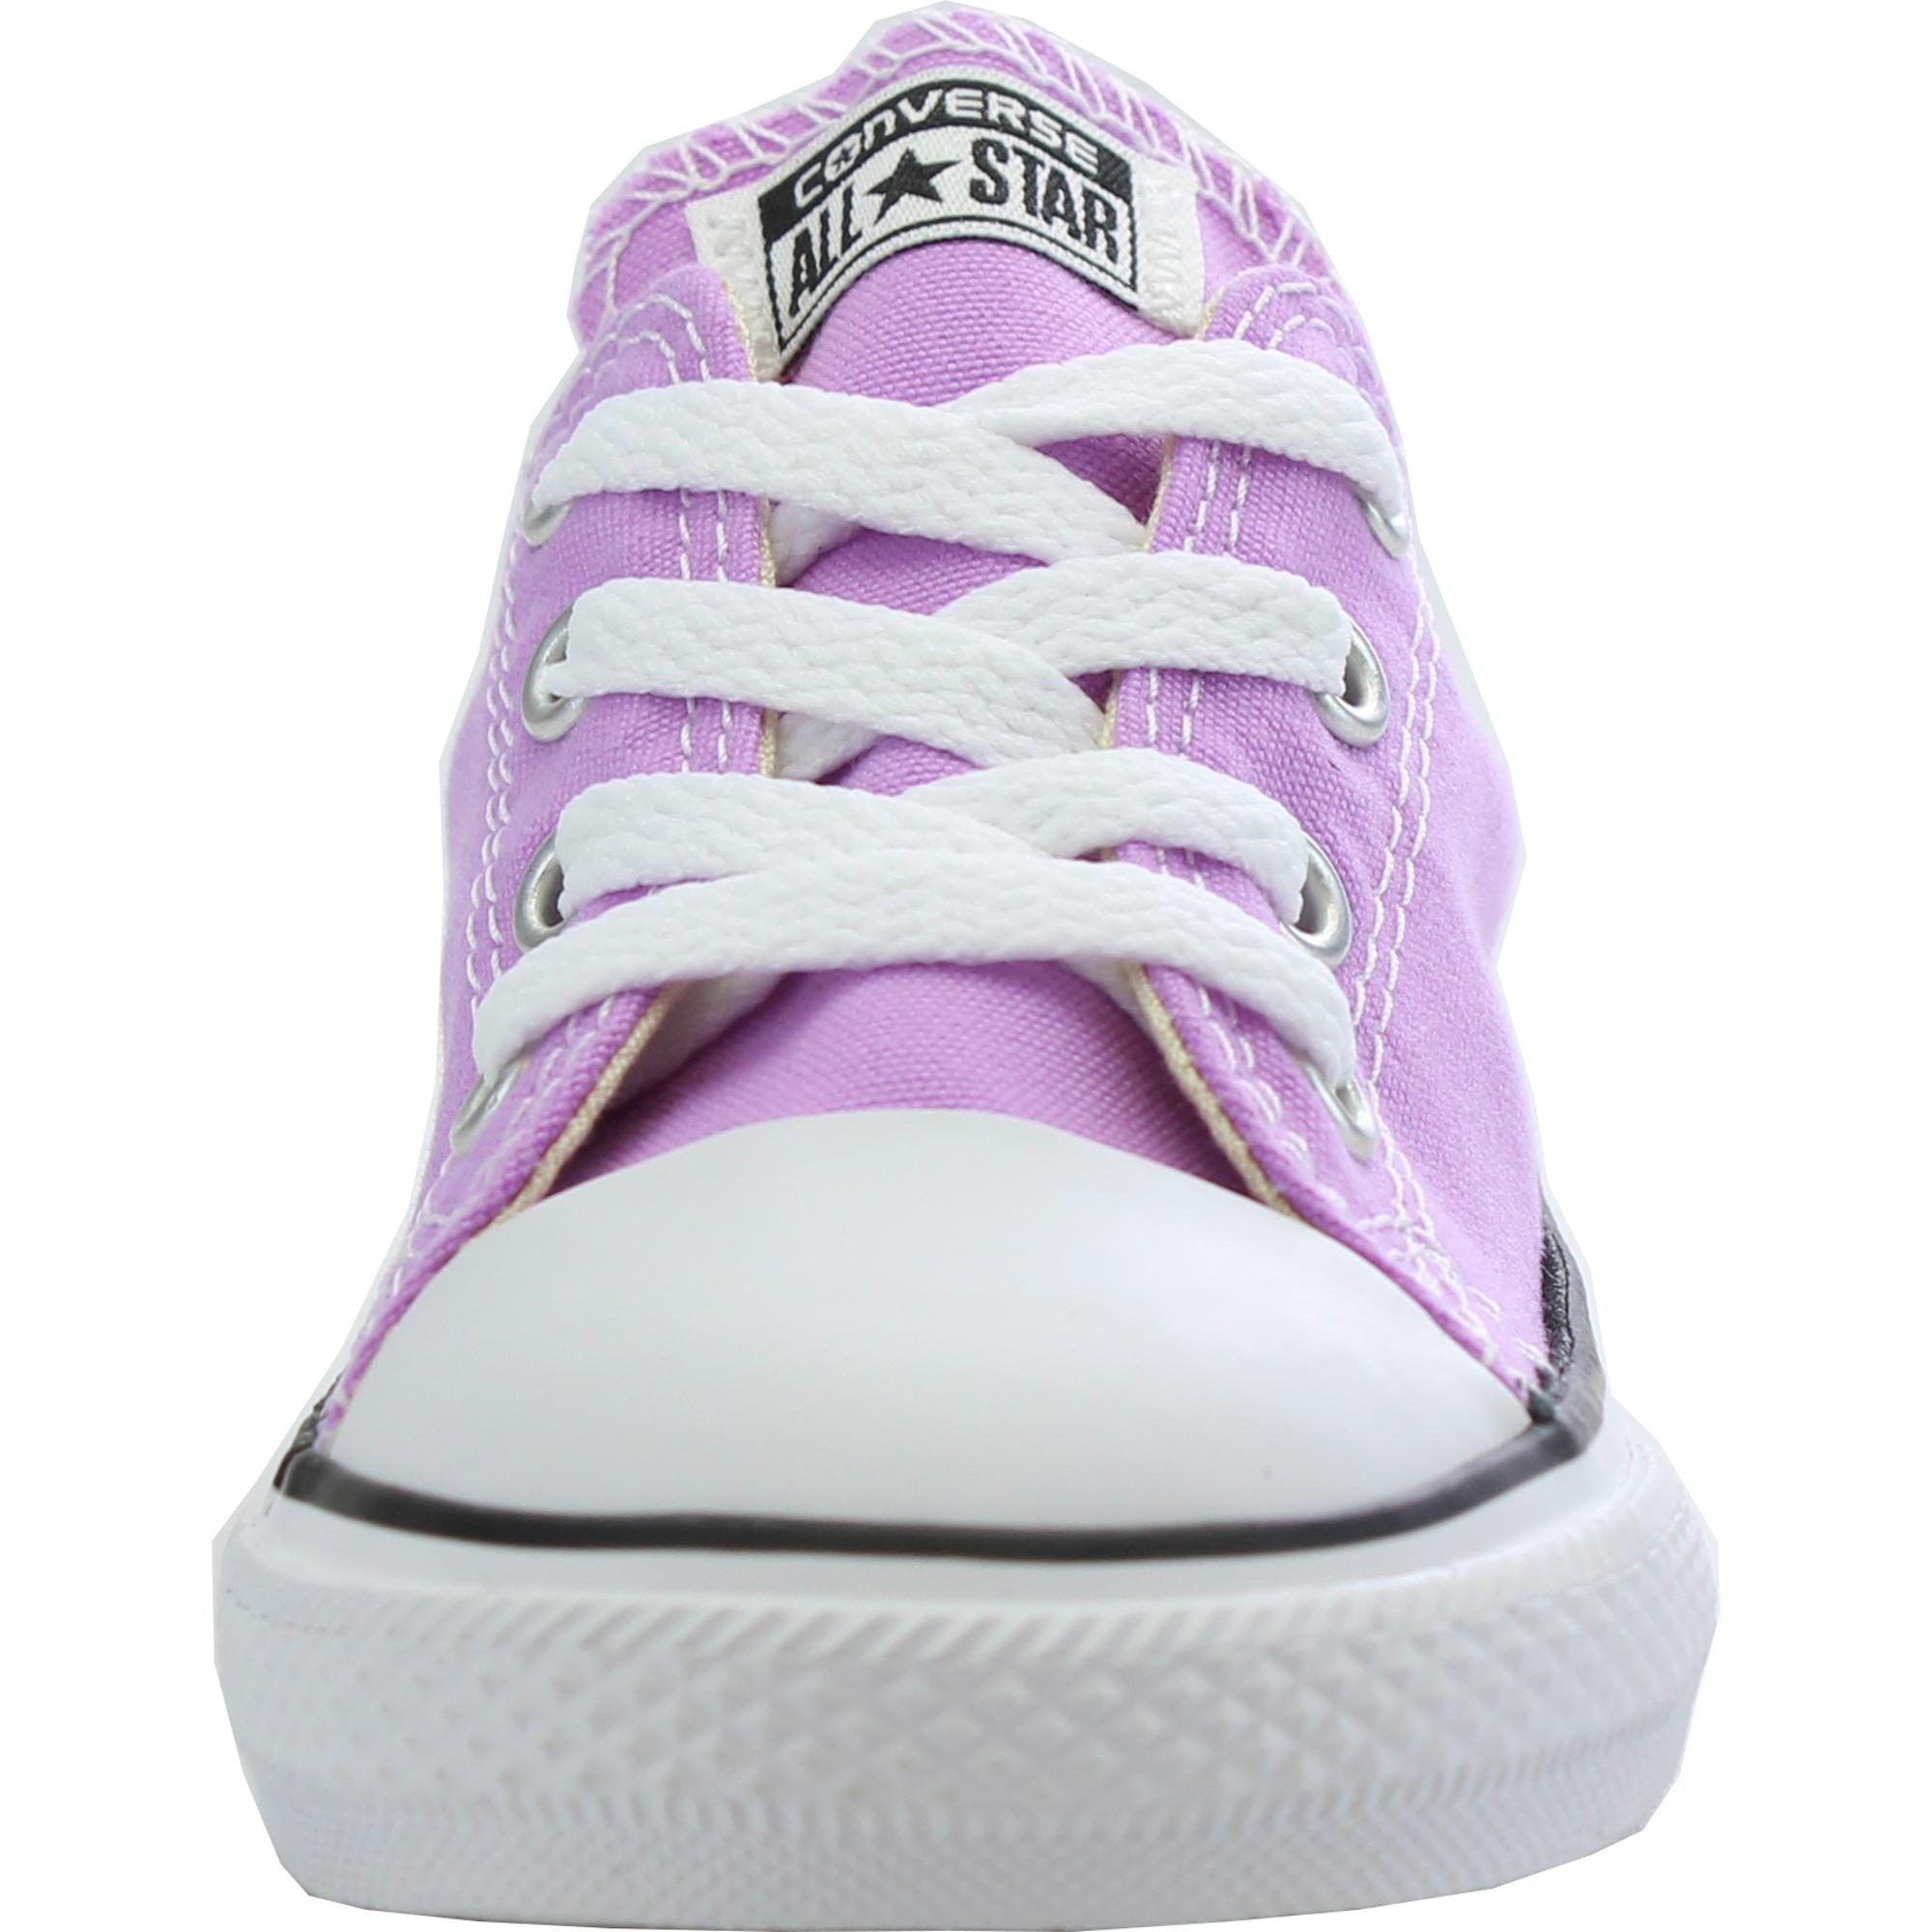 948 Best Converse images in 2020 | Converse, Me too shoes